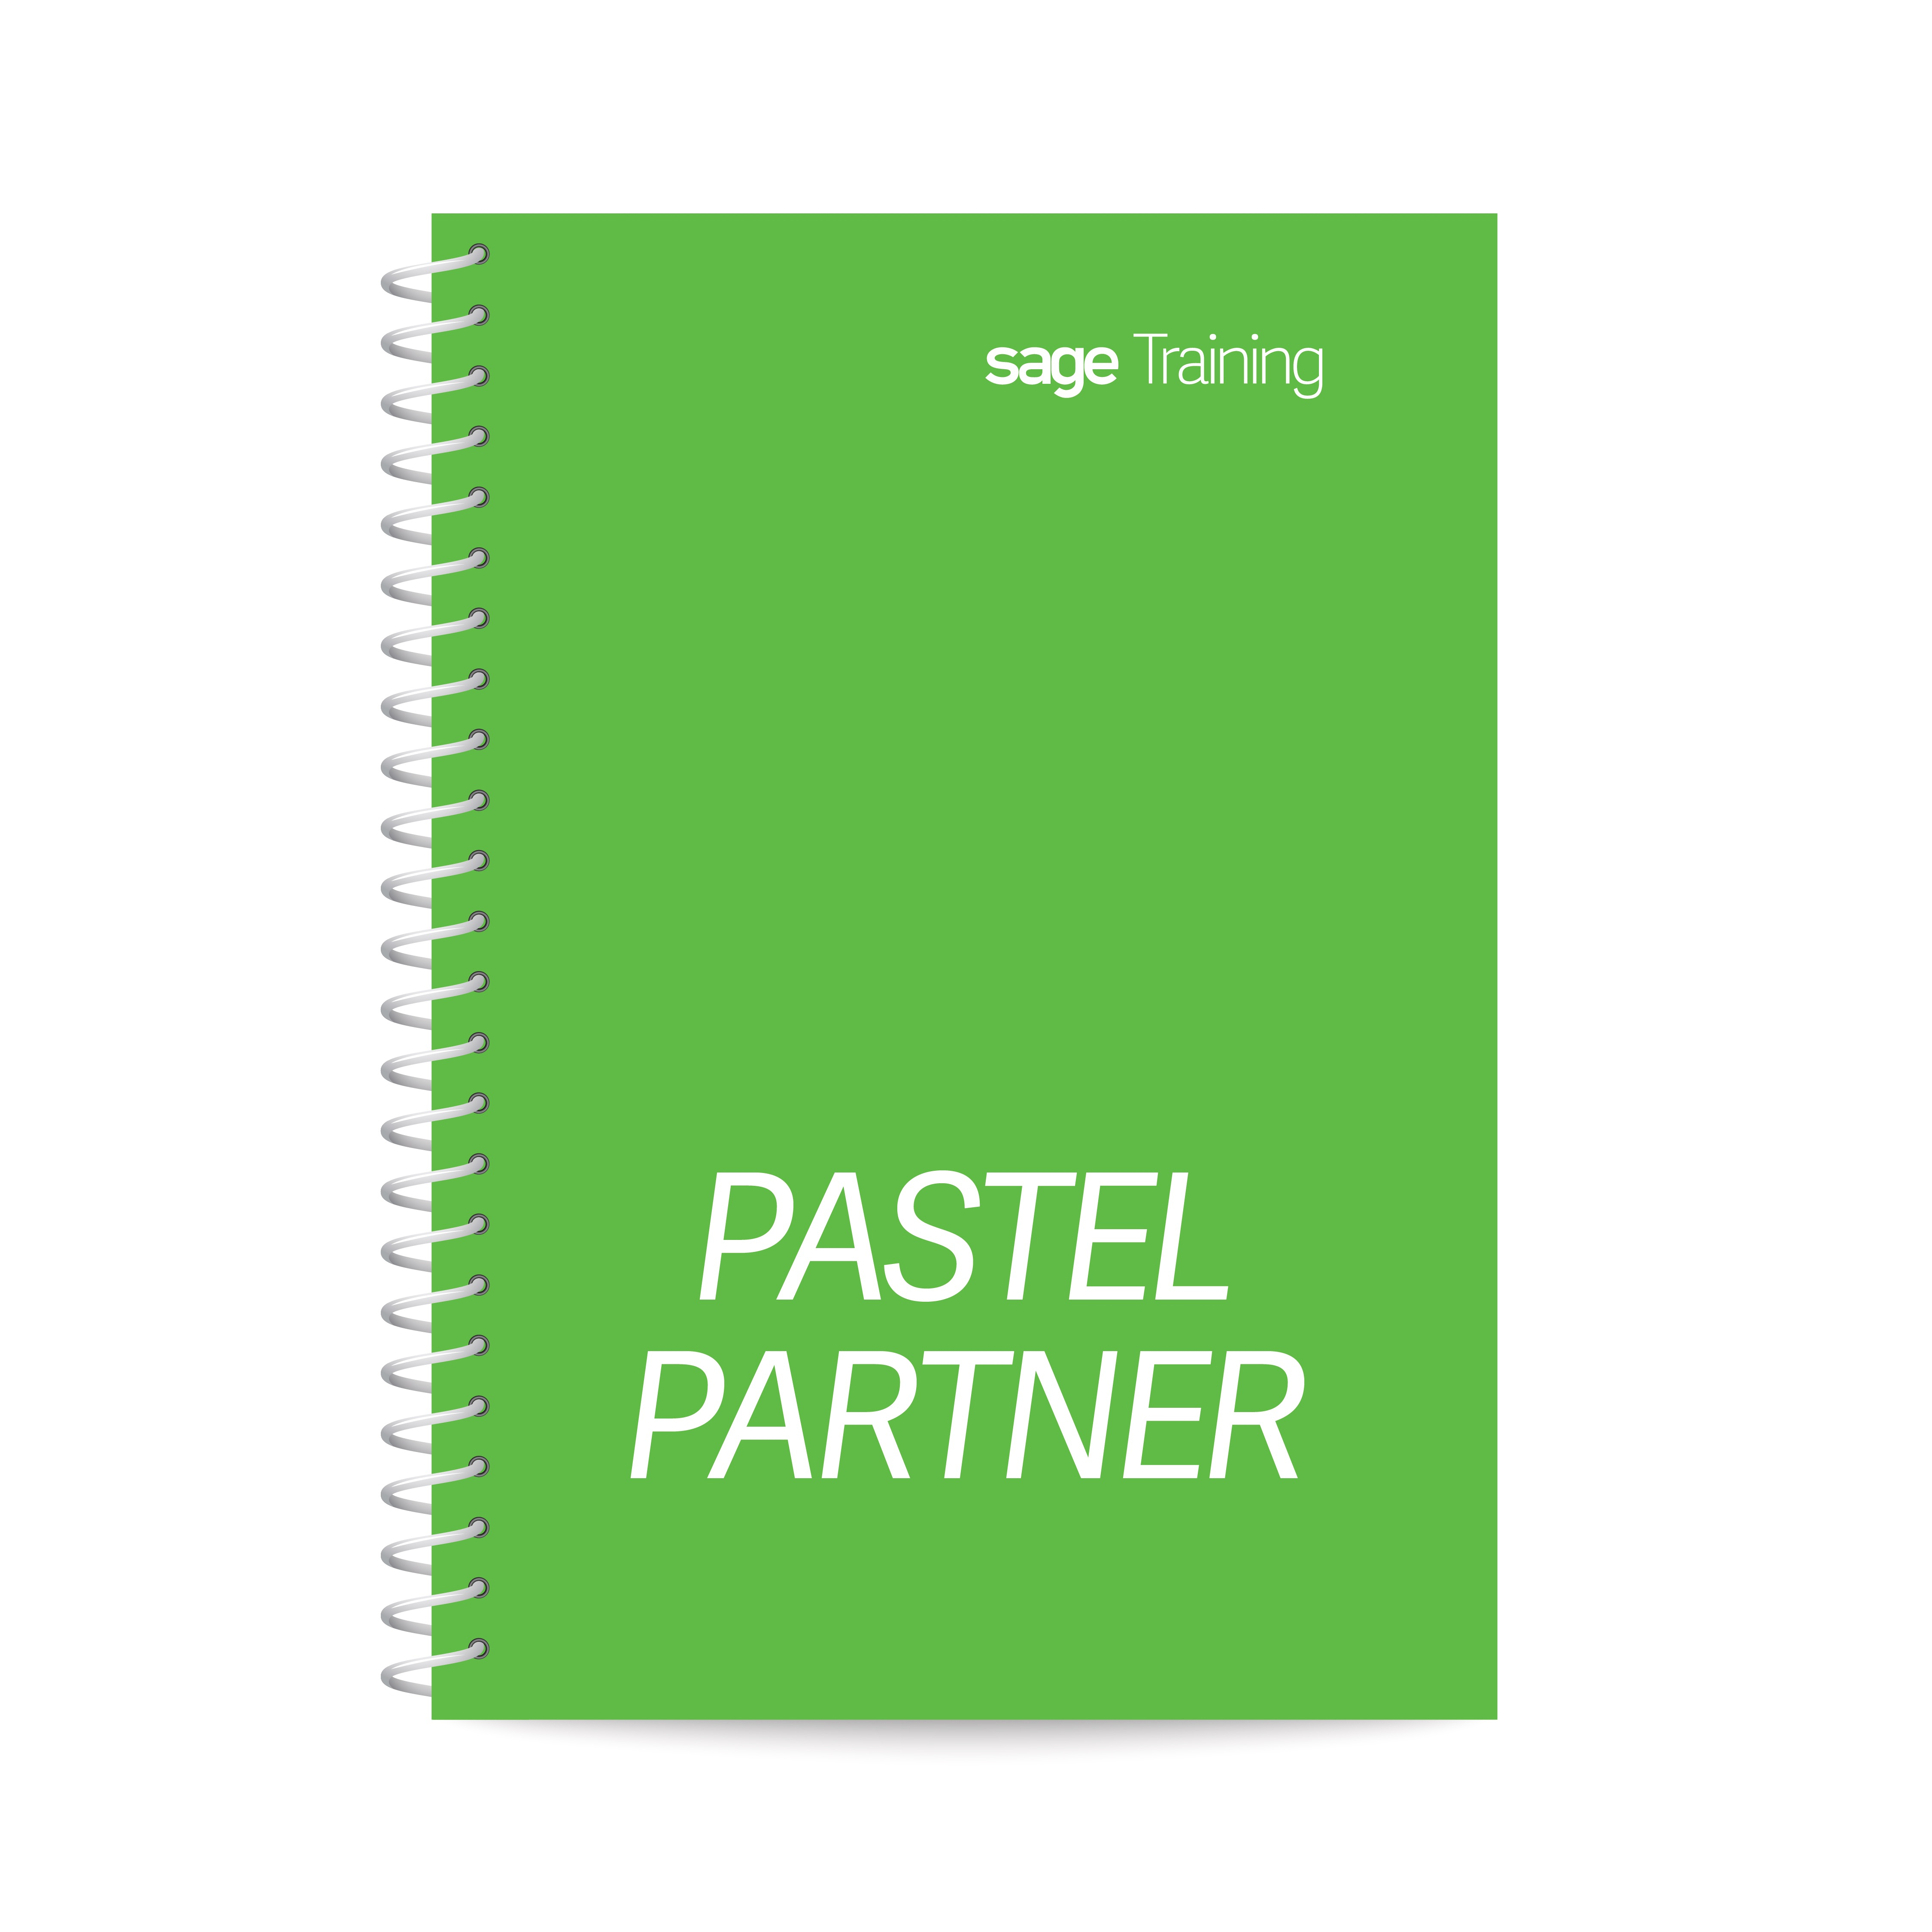 pastel partner intermediate self study fincom accounting rh fincomaccounting co za pastel partner training manual and educational software pastel xpress training manual pdf